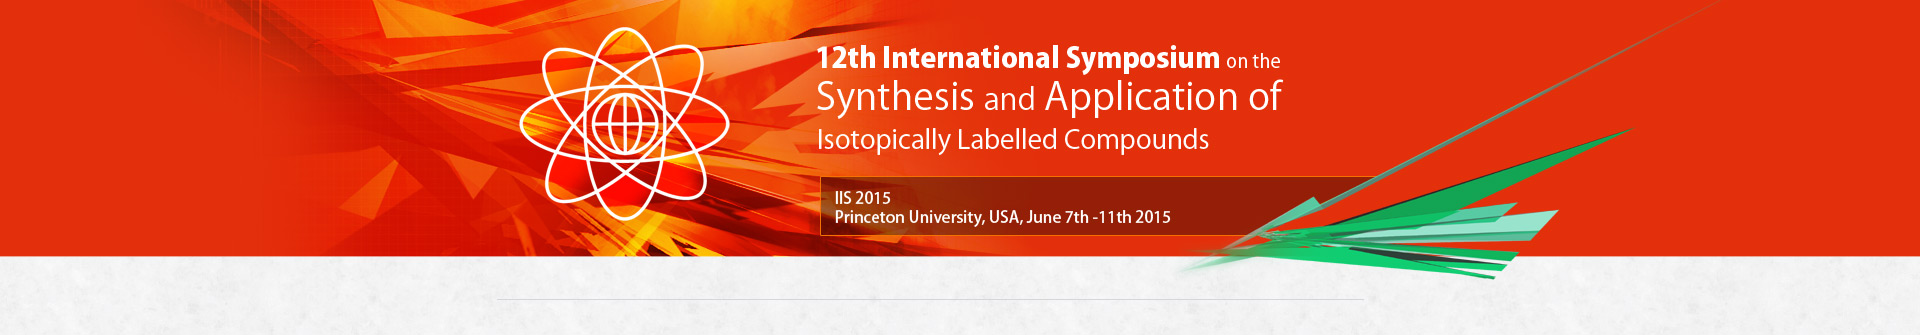 14th International Symposium on the Synthesis and Applications of Isotopically Labelled Compounds